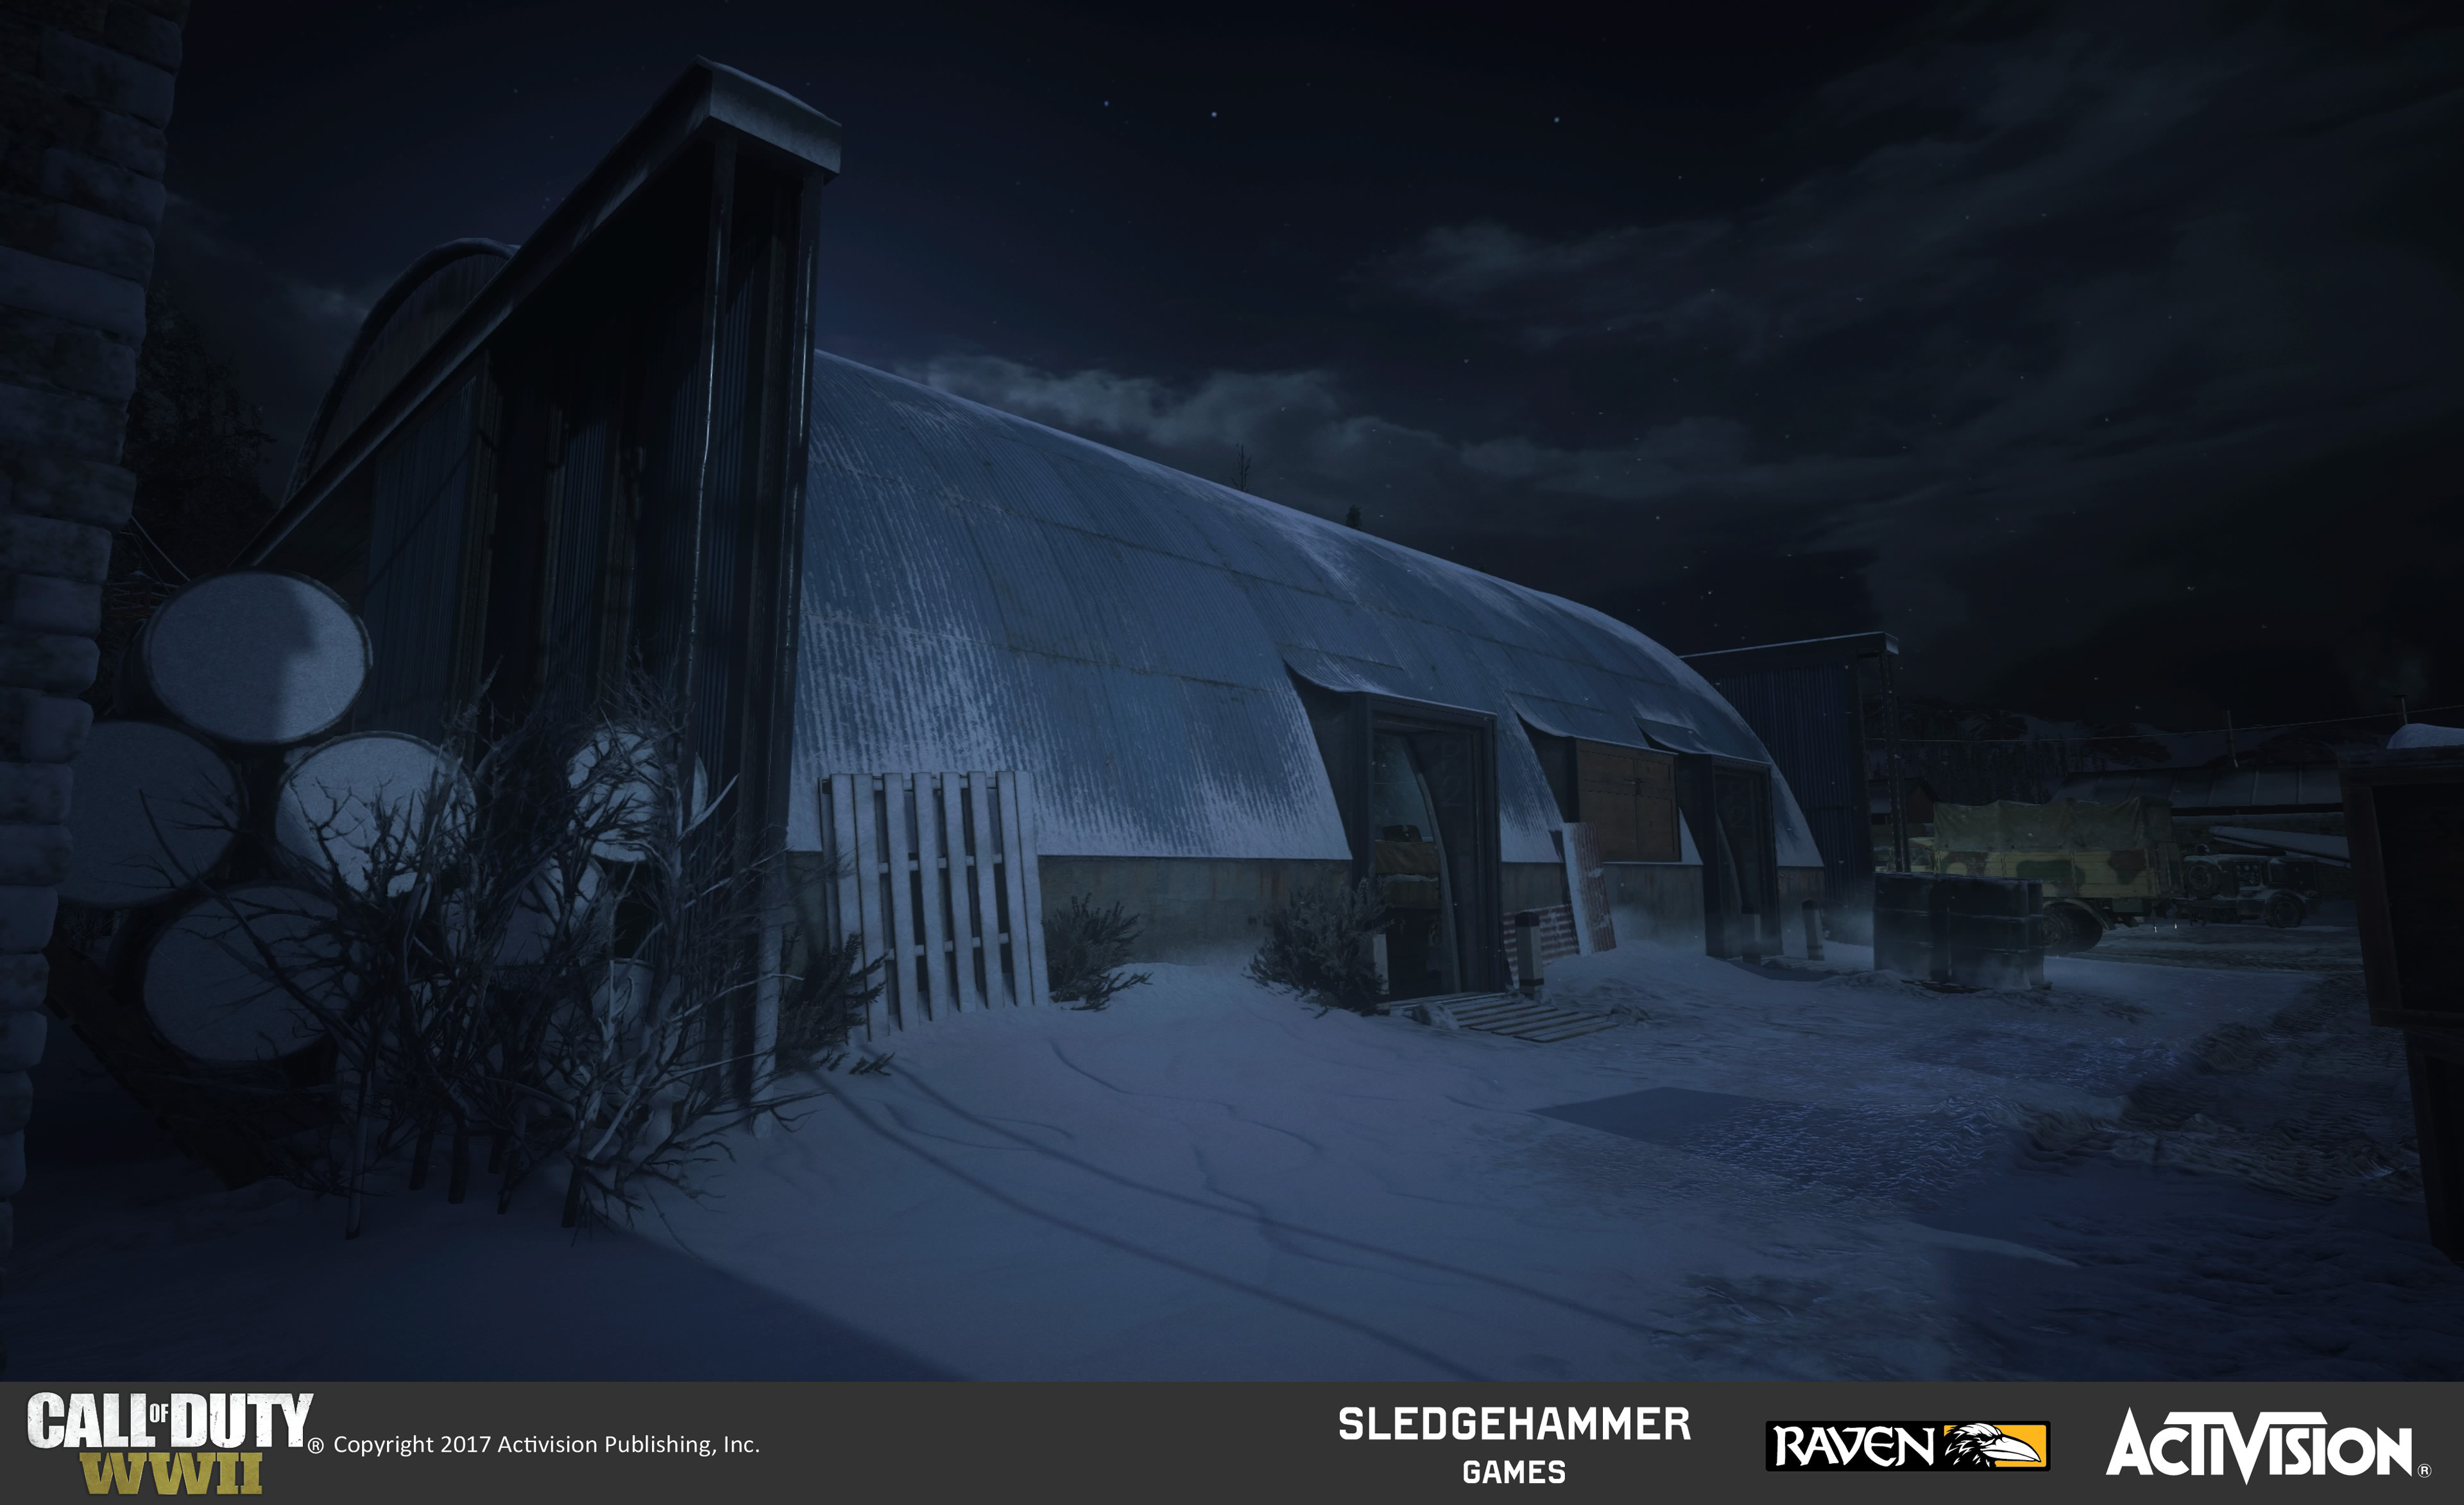 Small airplane hangar exterior. Responsible for world building which included set-dressing, terrain and architecture construction, as well as material blend treatments utilizing custom and pre-existing materials.